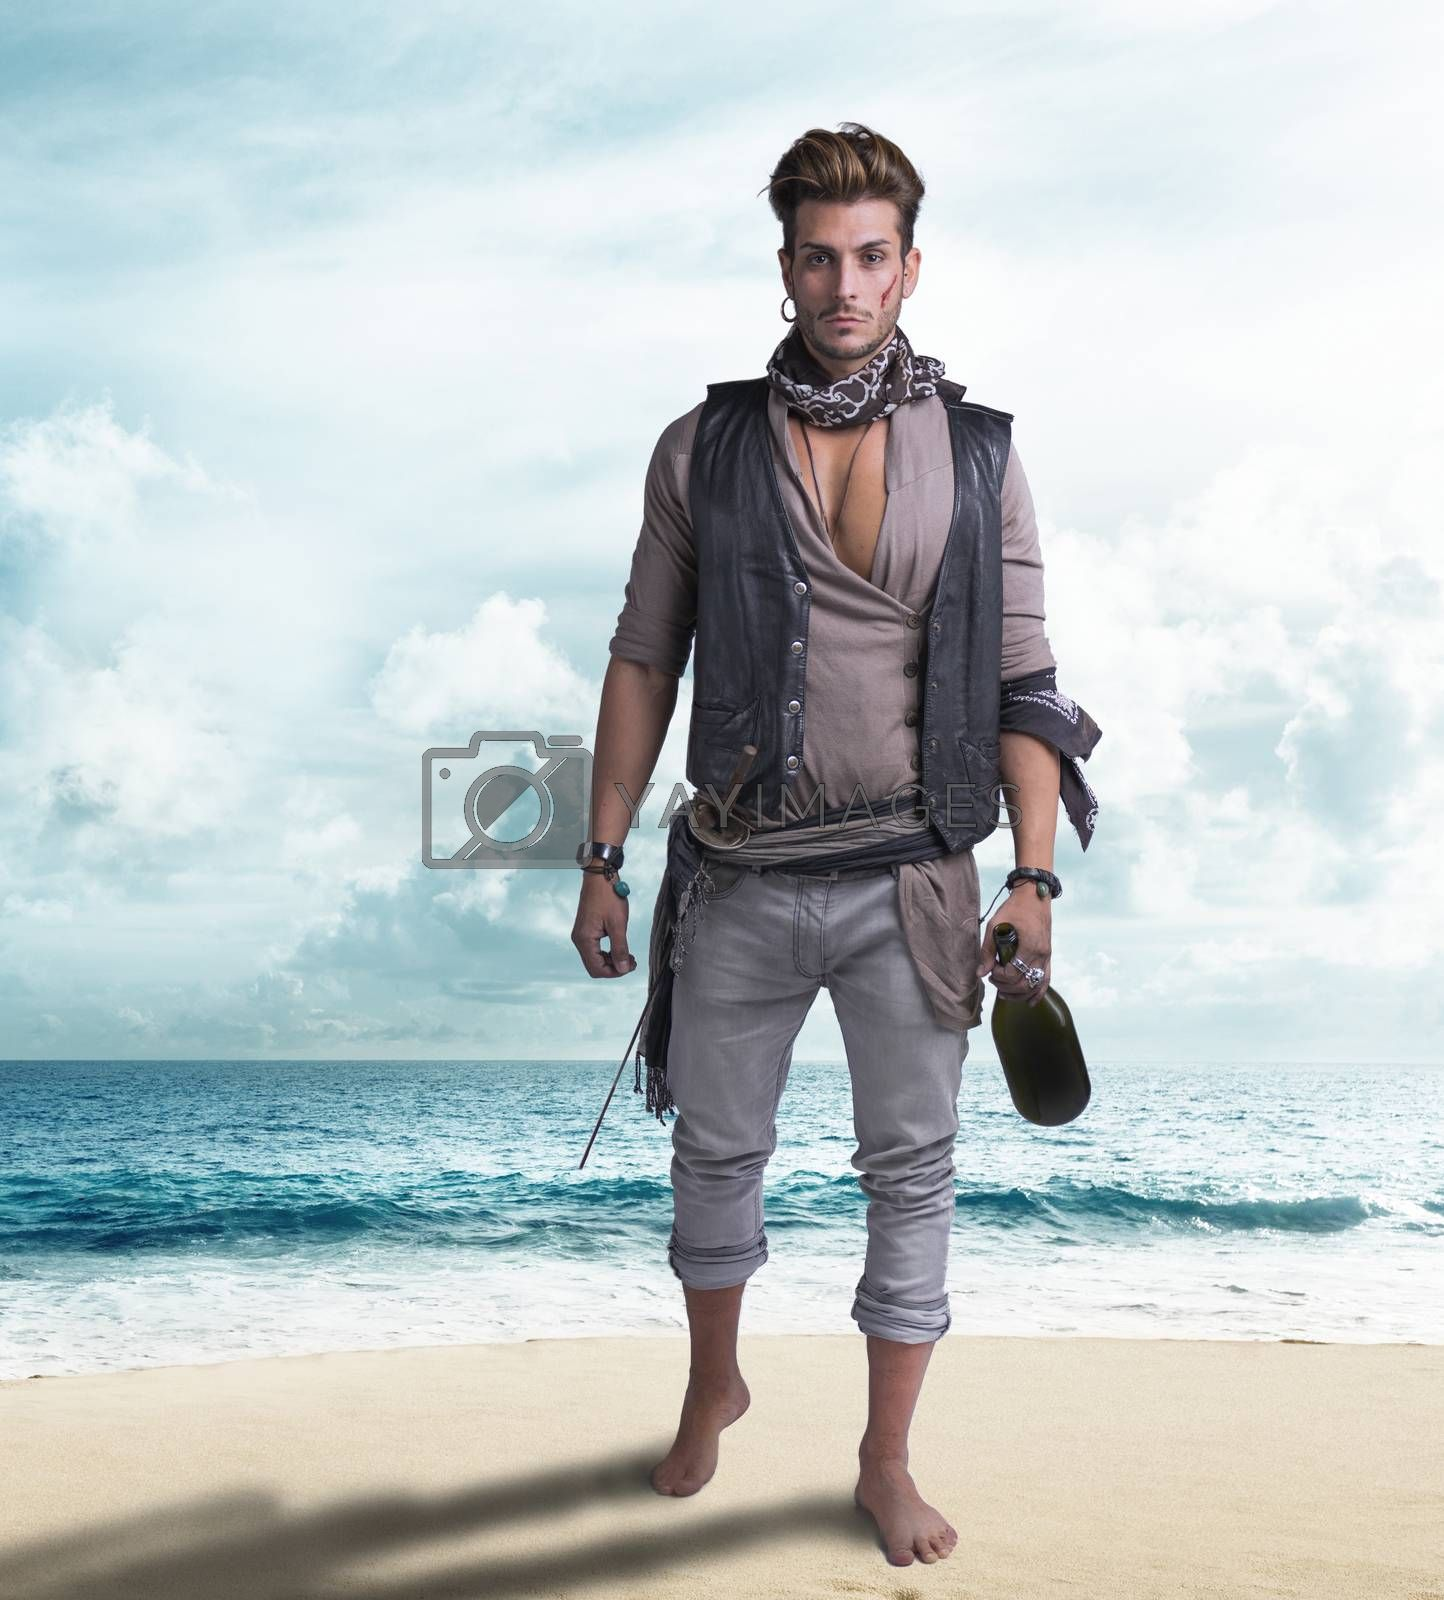 Handsome young pirate on the beach, barefoot, holding wine bottle, looking at camera